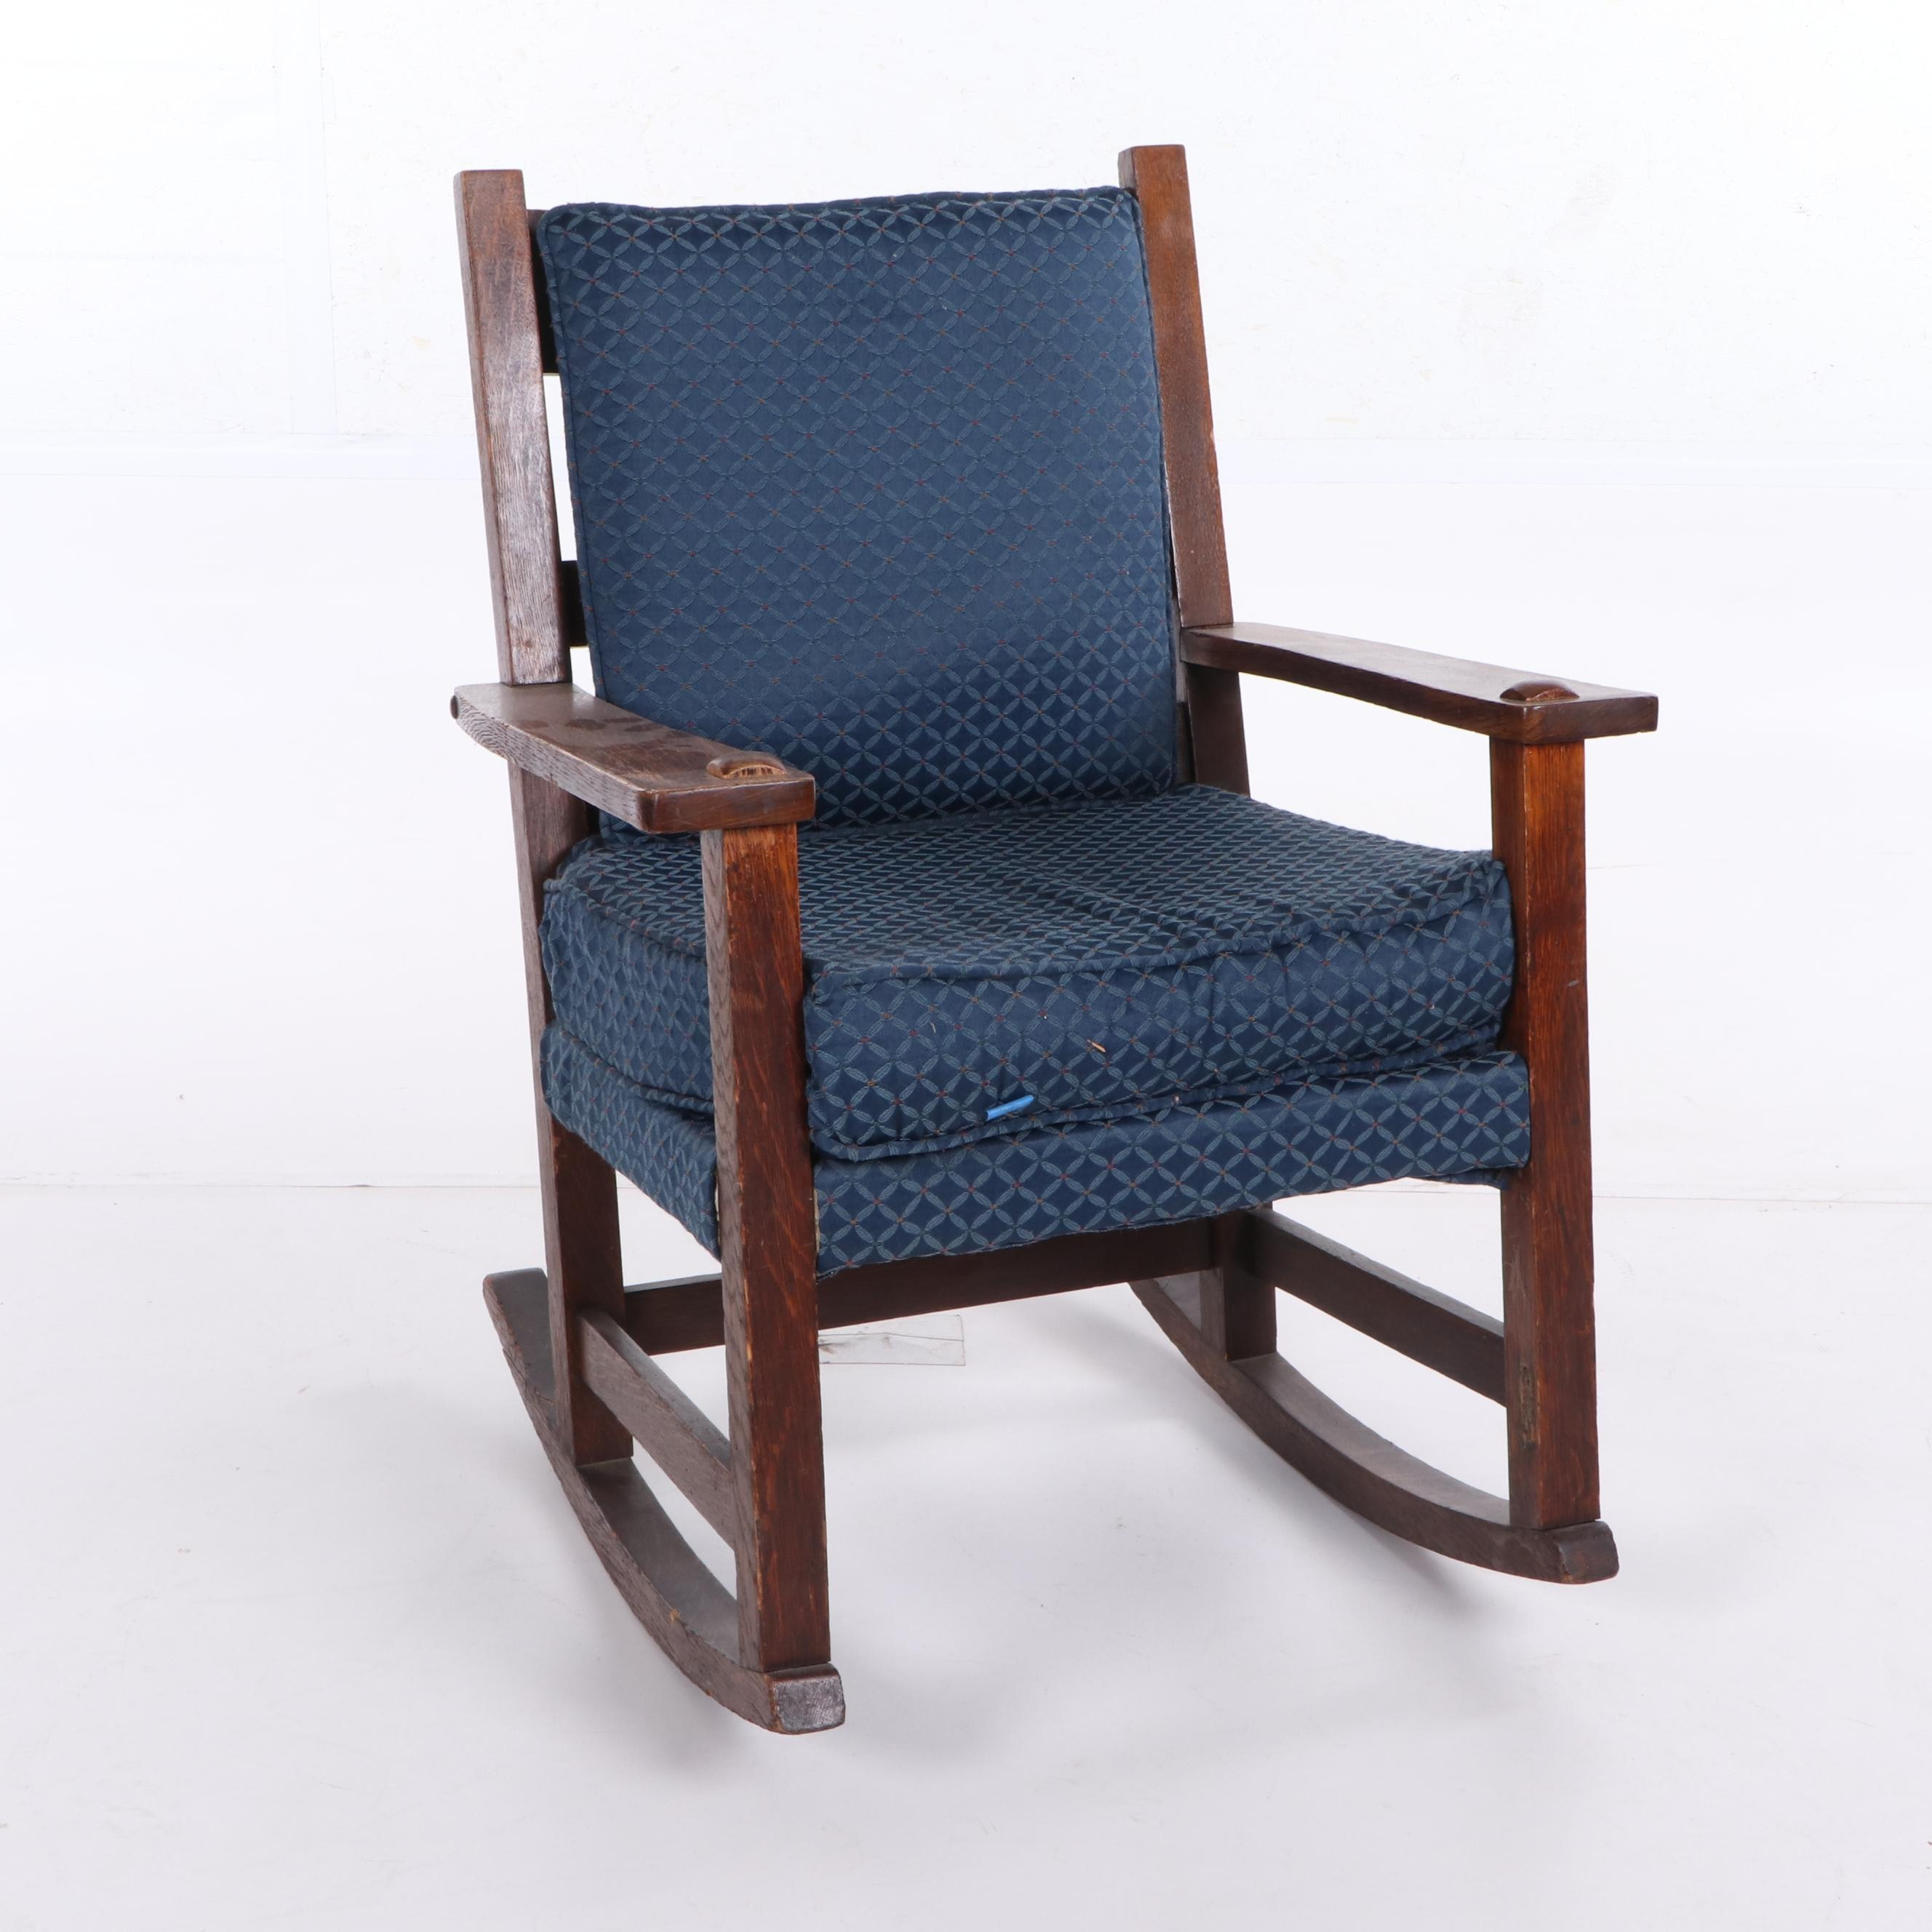 Mission Style Oak Frame Upholstered Rocking Chair, Early 20th Century